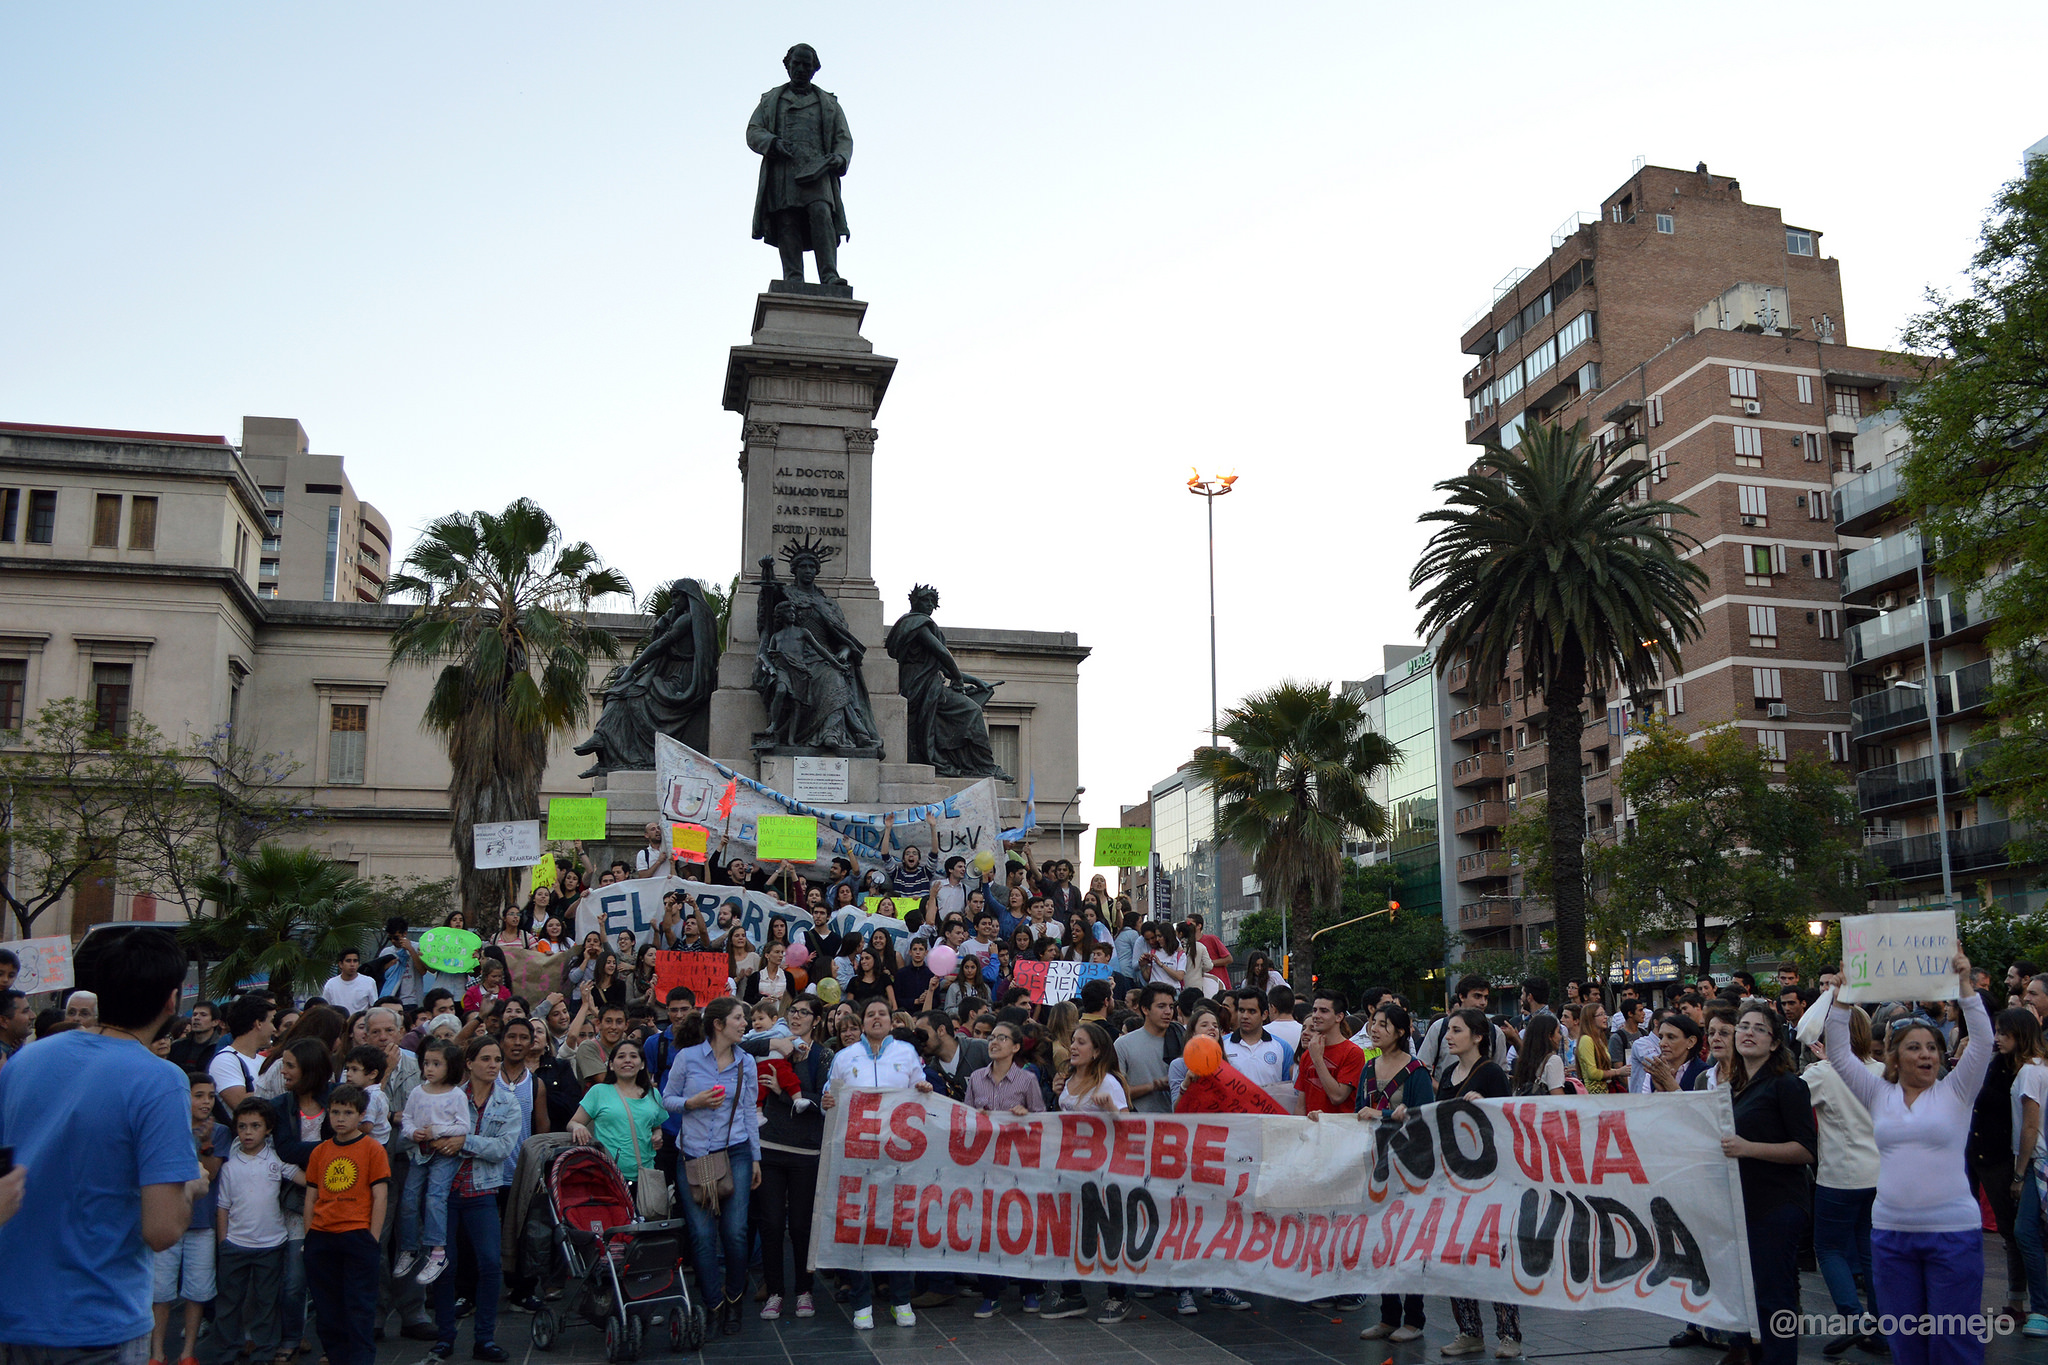 A large group of women and men gather in front of statue in a plaza.